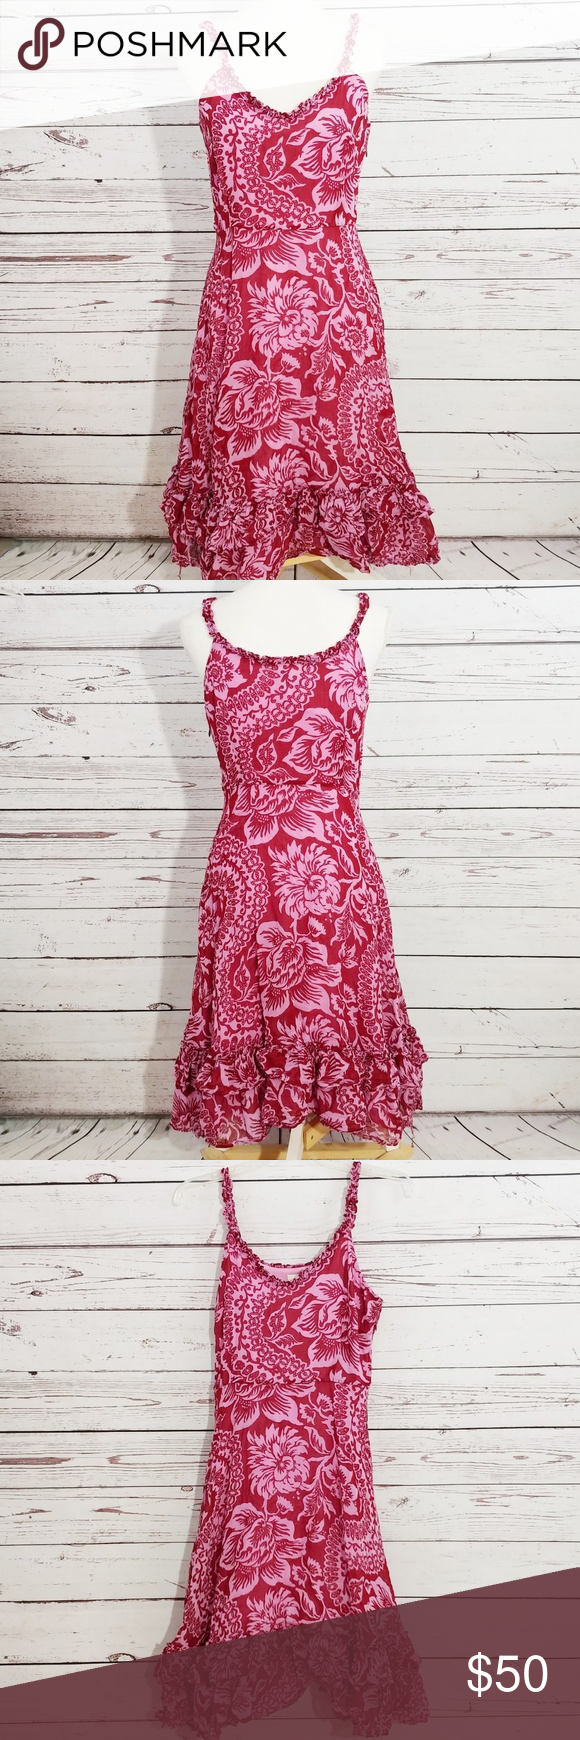 28f893c733ae4 Odille Anthro floral print ruffle trim dress BRAND: Odille Anthropologie  SIZE: 8 FLAW: